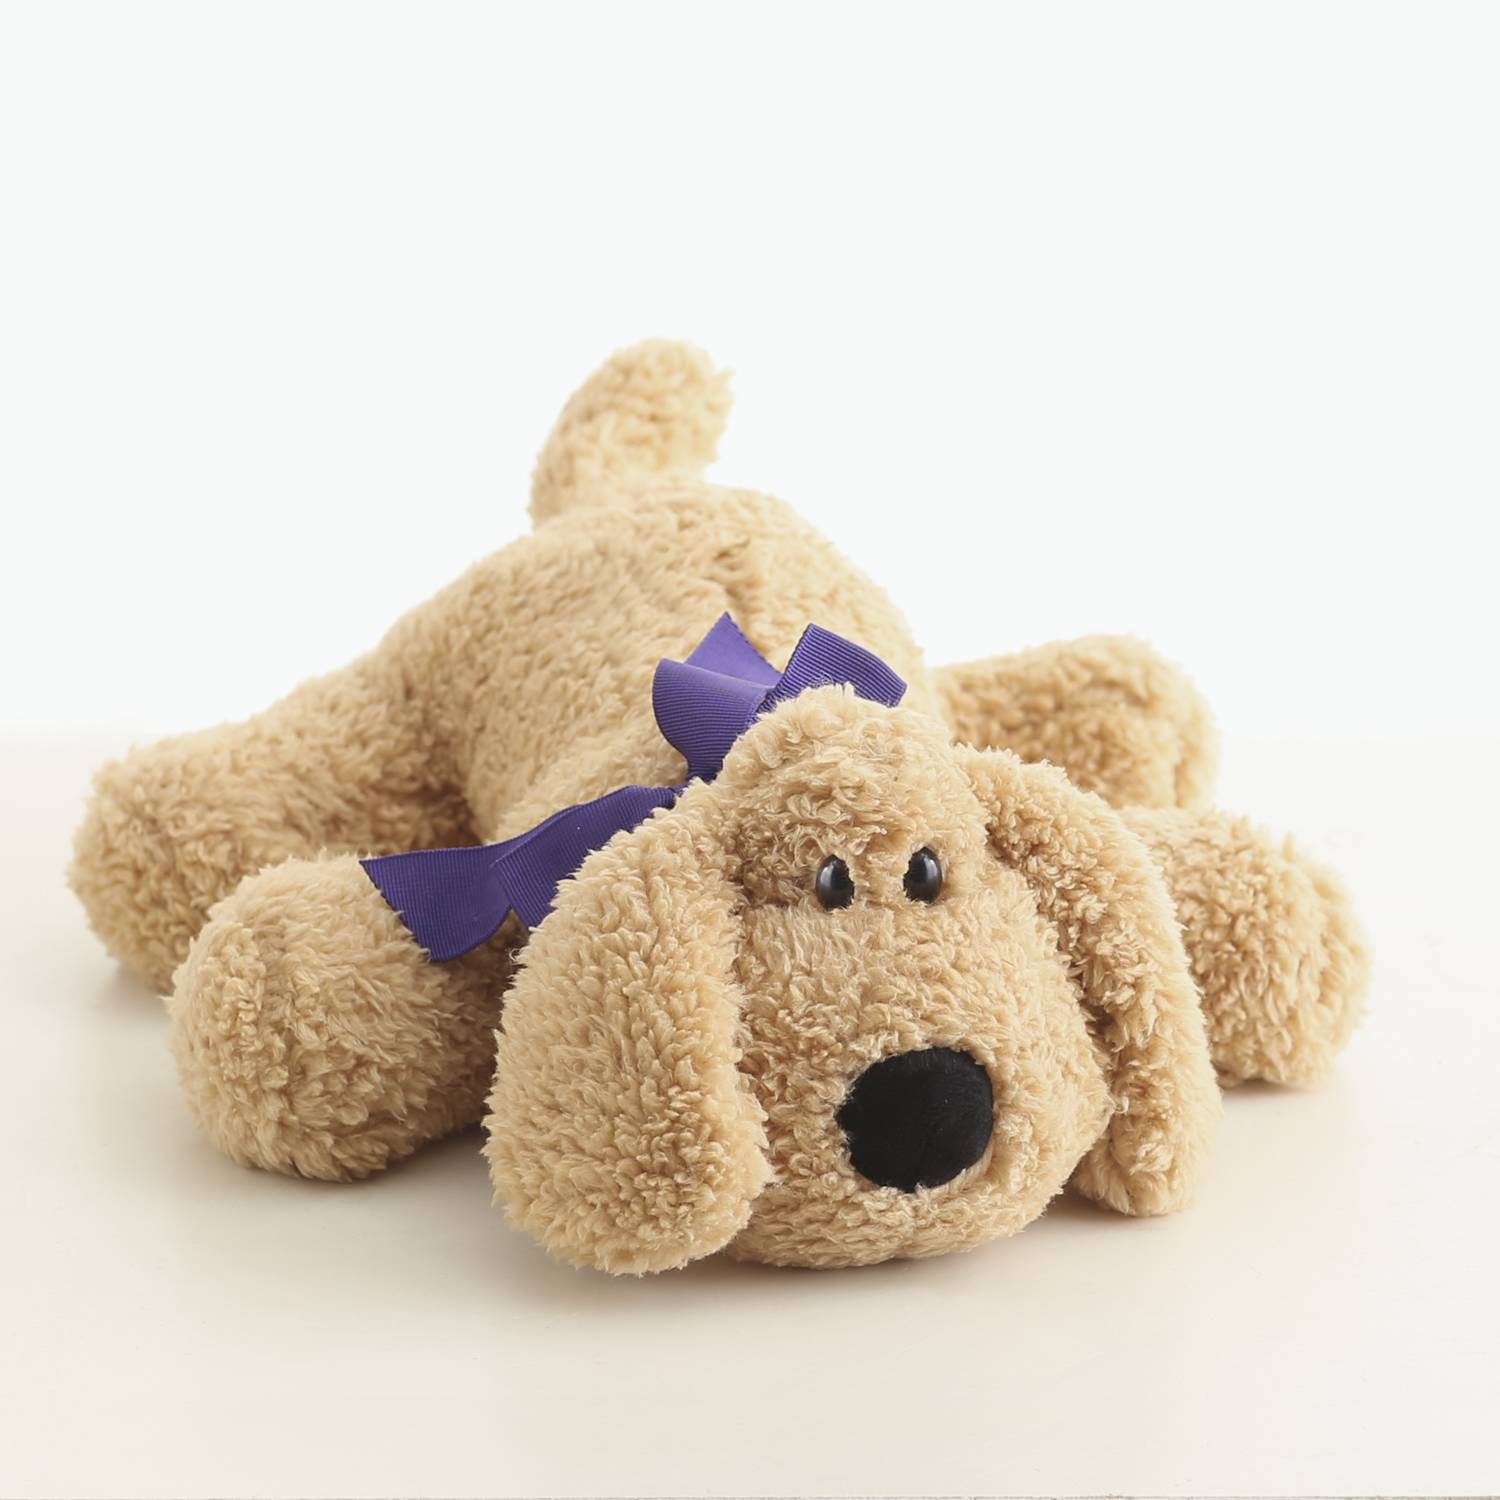 Soothing lavender scented stuffed animal dog